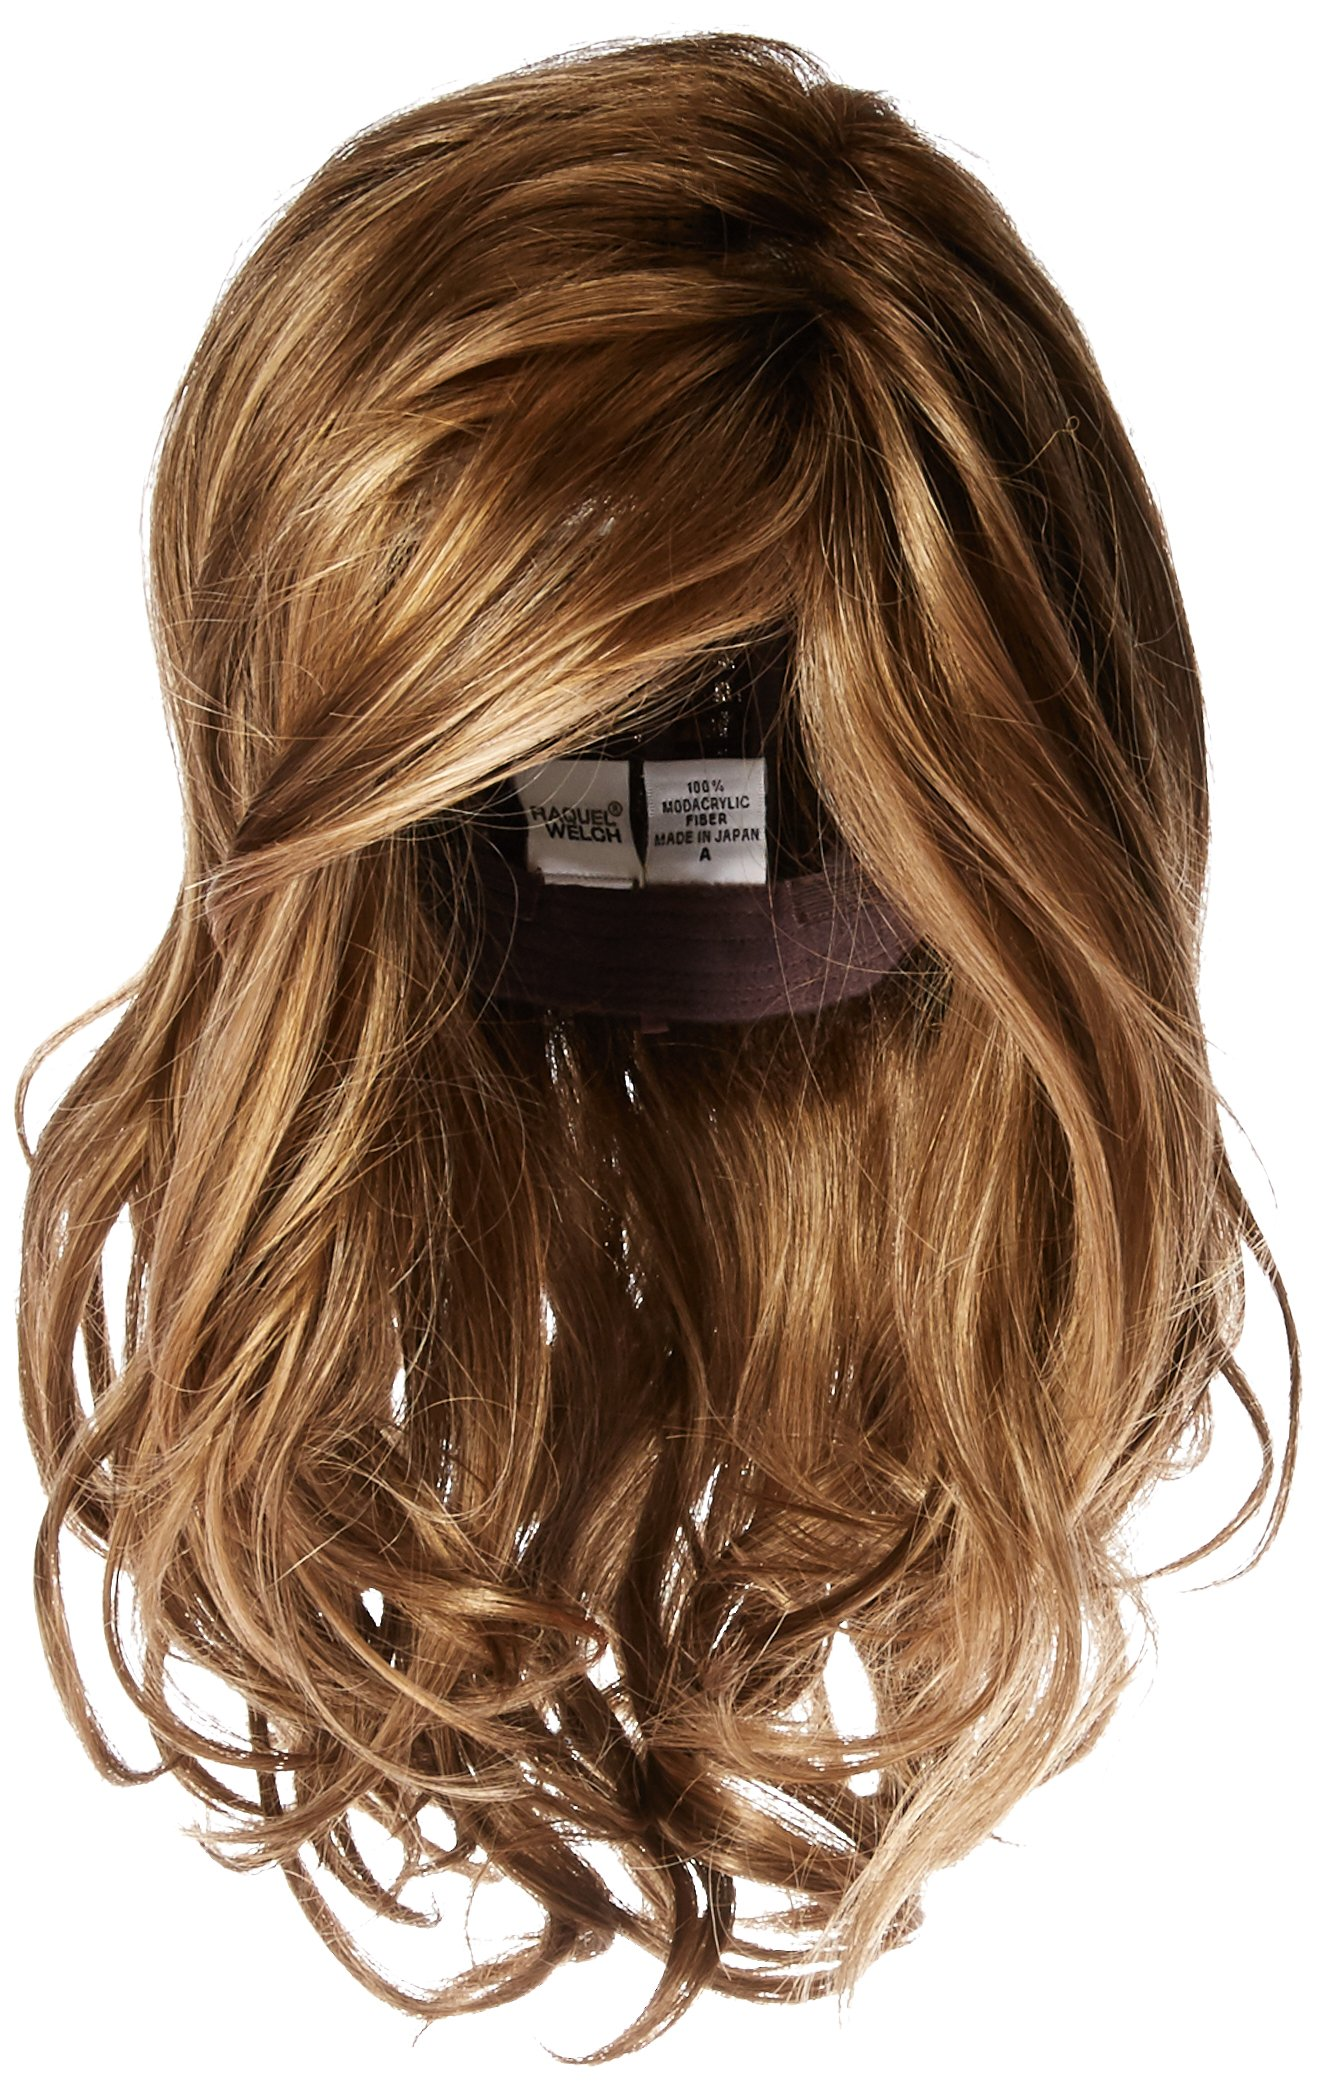 Hairdo Love Love Love Long Full Length Straight Hair With Soft Natural Wave Highlights, ss12/20 Toast by Hairuwear by Hair u wear